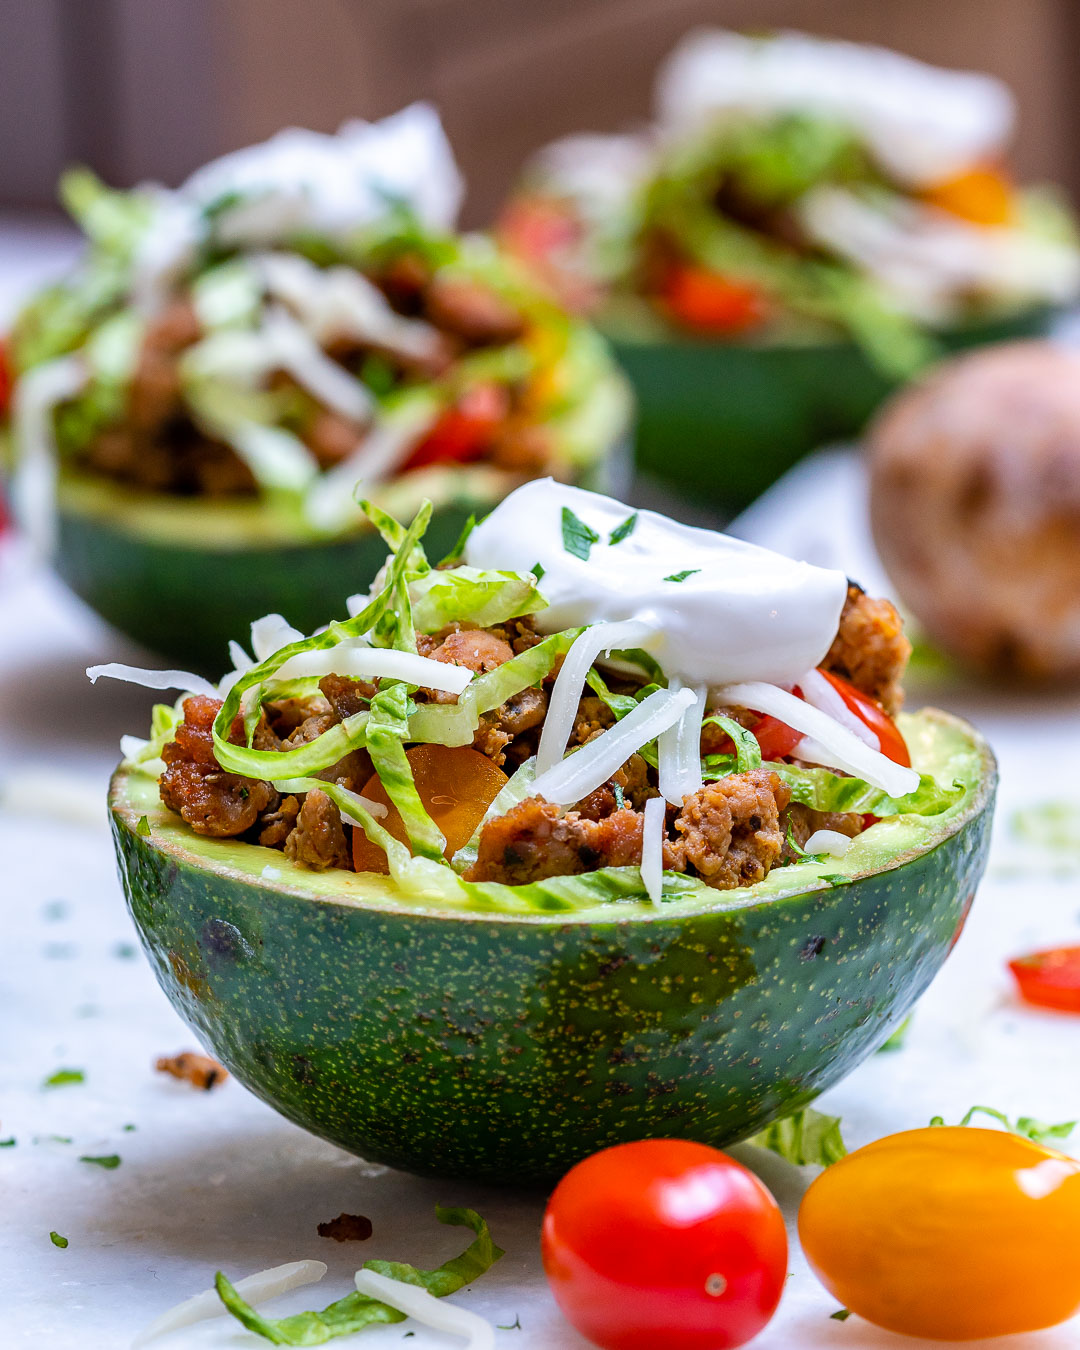 Clean Eats Turkey Taco Stuffed Avocados